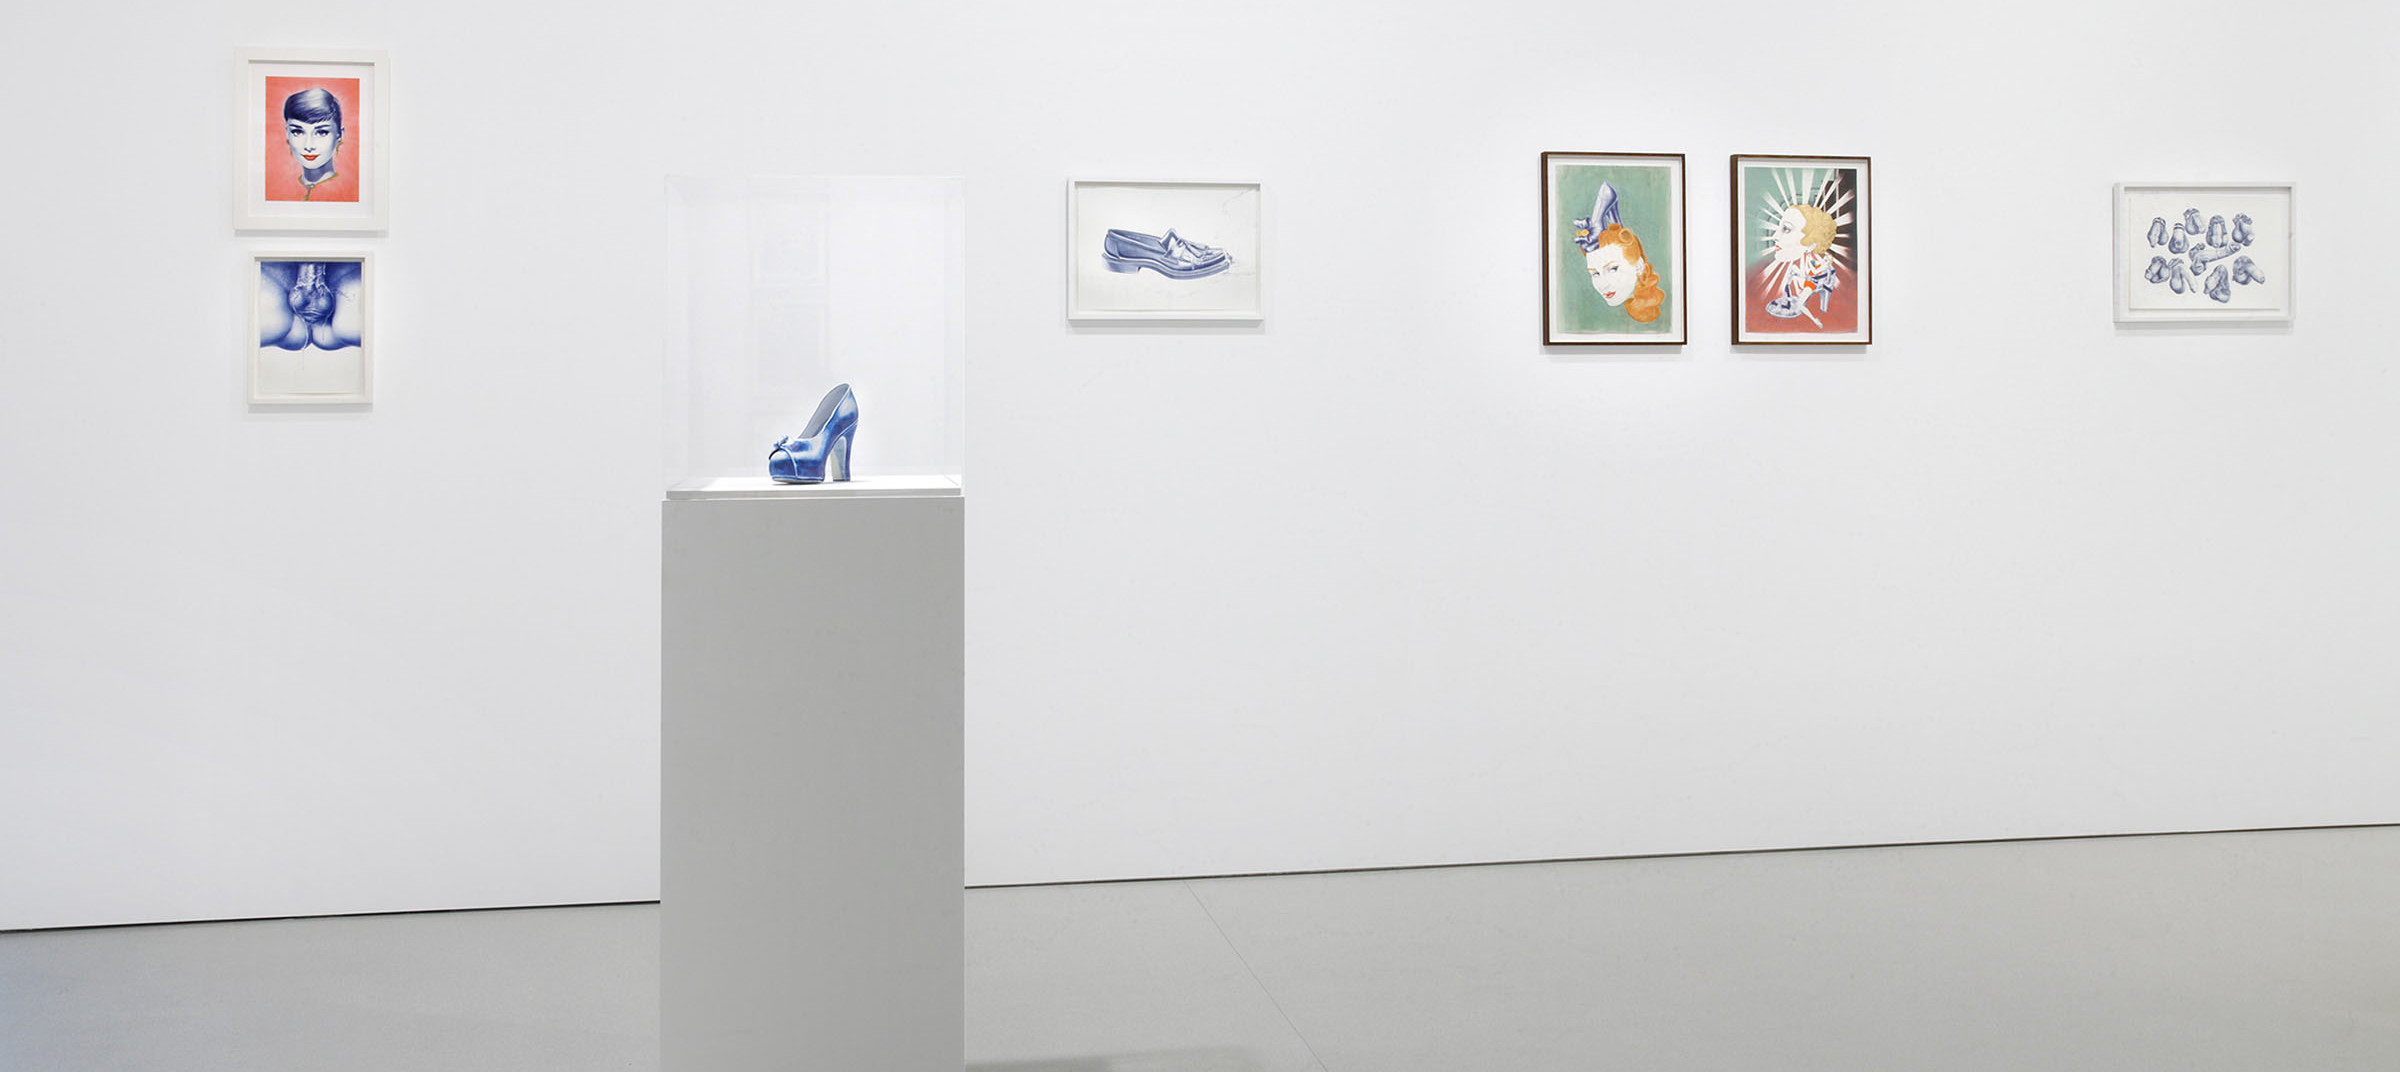 Fine artist Cary Kwok's exhibition, Obsession, installation view